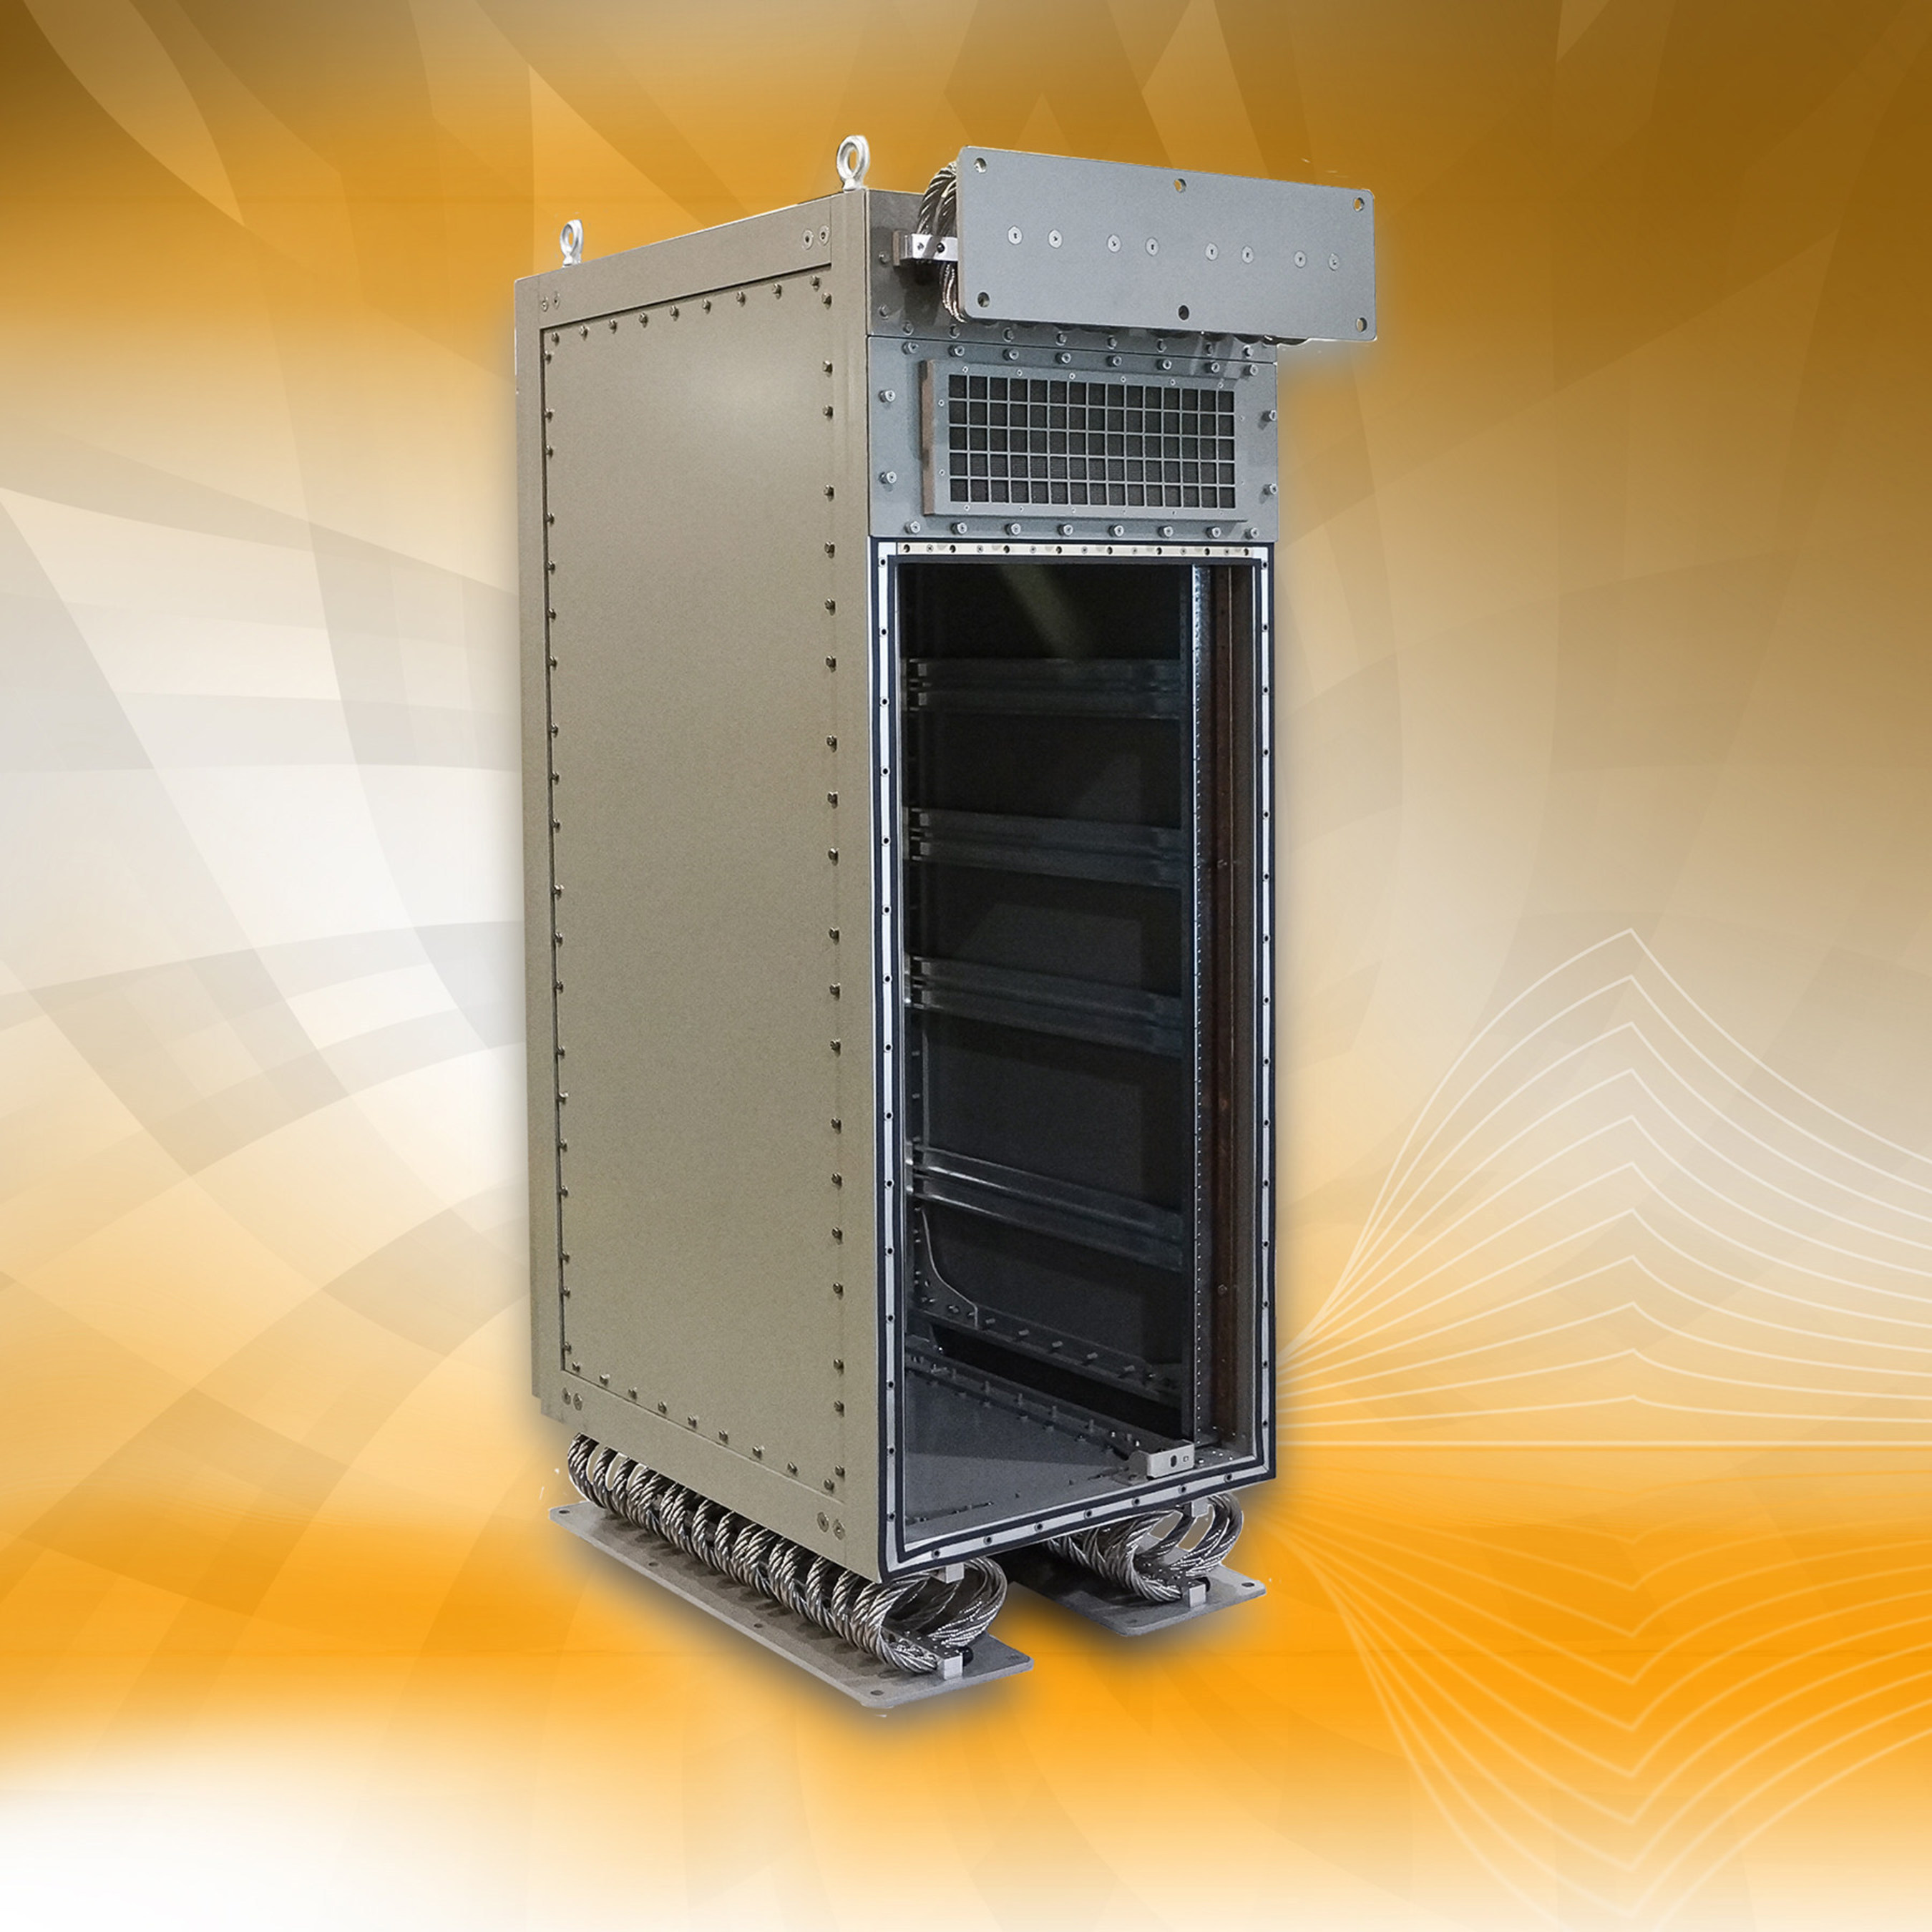 Weld-Free, Rugged Cabinet from Optima Offers Longer Structural Integrity. (PRNewsFoto/Elma Electronic Inc.)